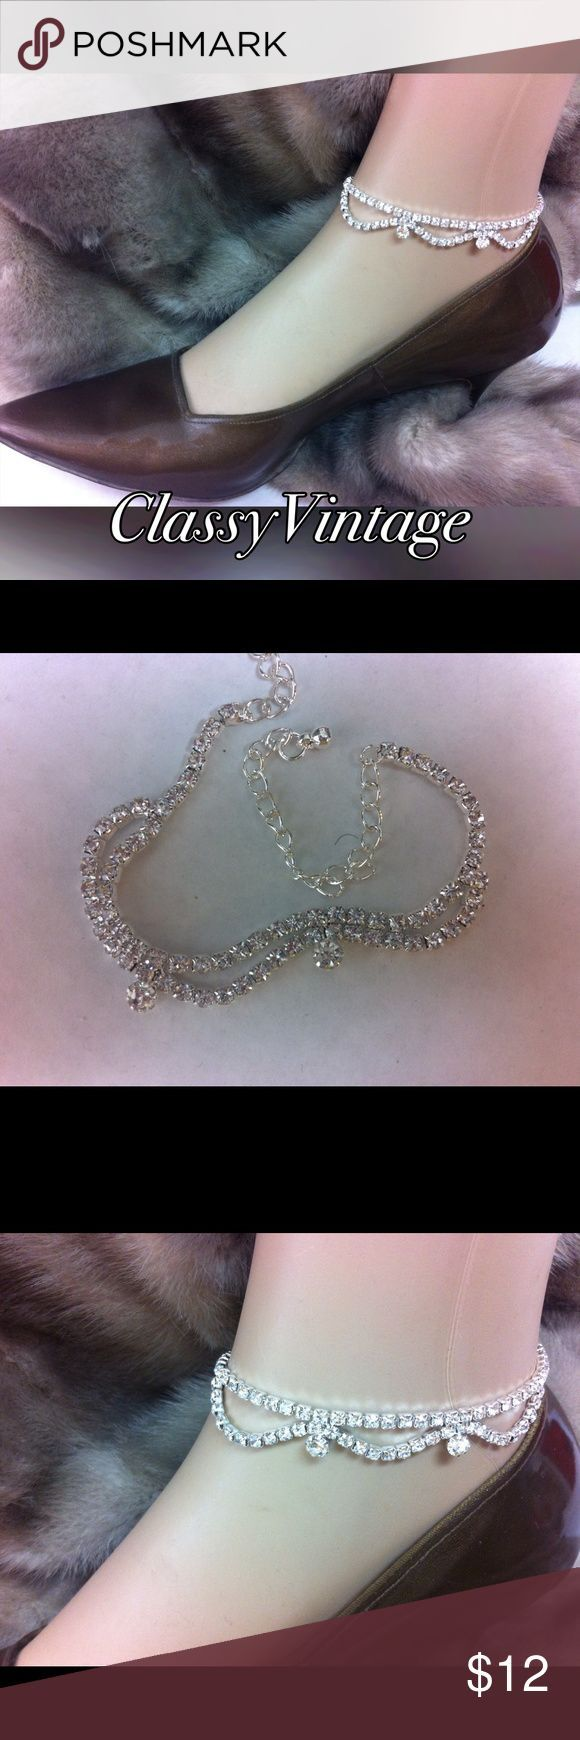 Elegant silver and diamond ankle bracelet So pretty and elegant silver colored metal and glass chrystals. Total length is 11 inches end to end. Decor length is almost 6 inches with draping half loops and two accent stones. Lobster claw clasp boutique Jewelry Bracelets